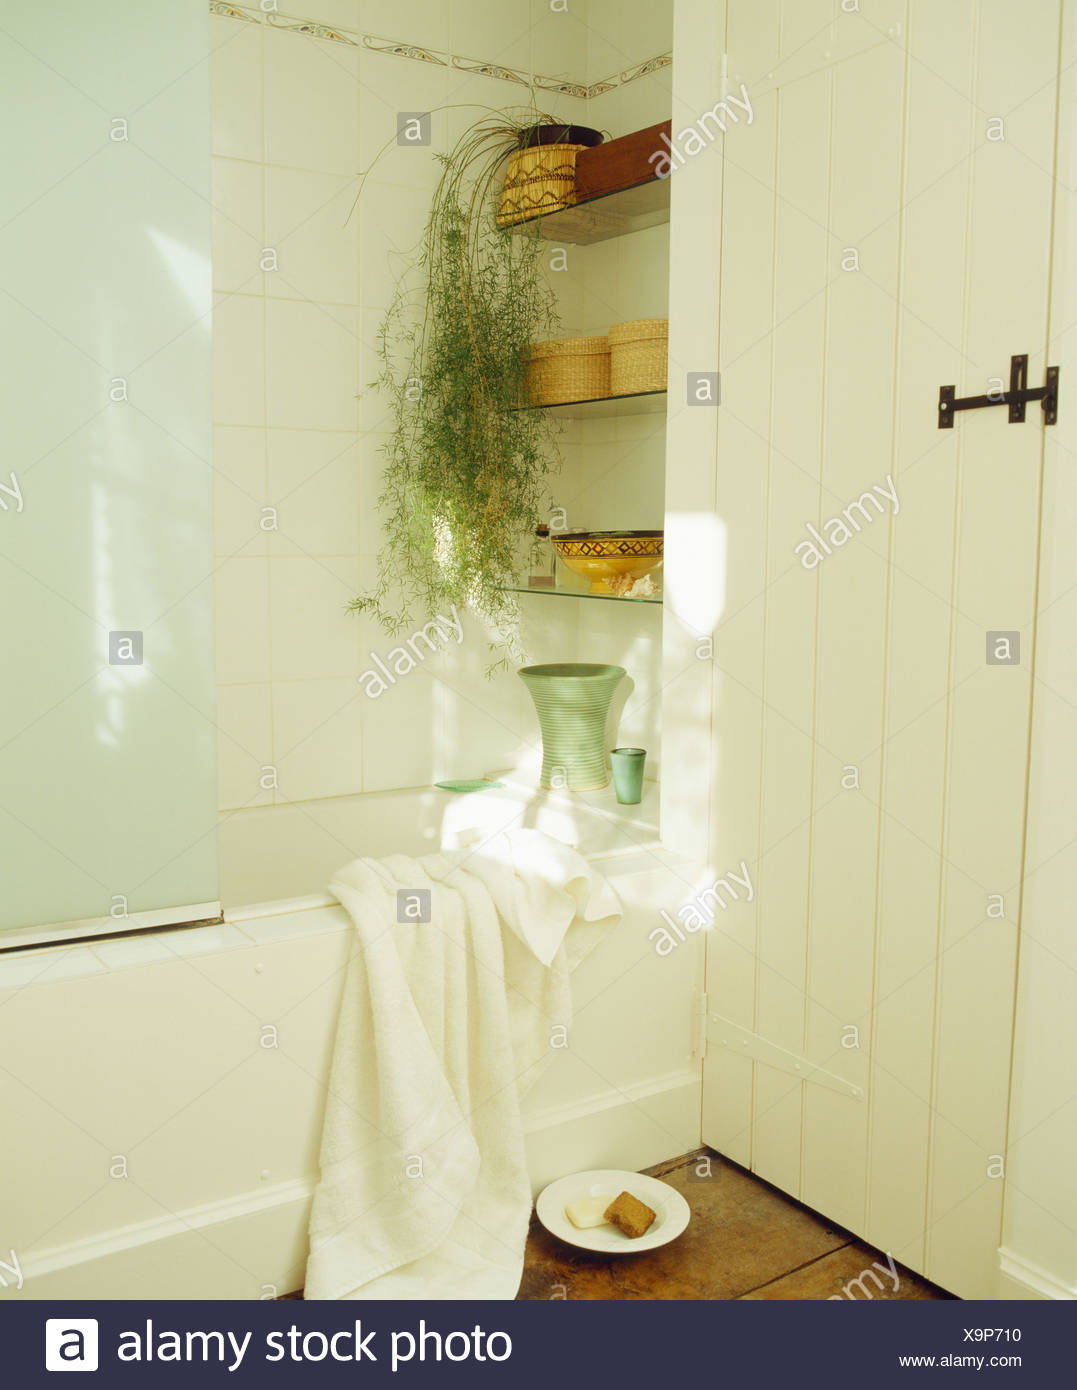 Trailing green houseplant on glass shelves above bath in white ...